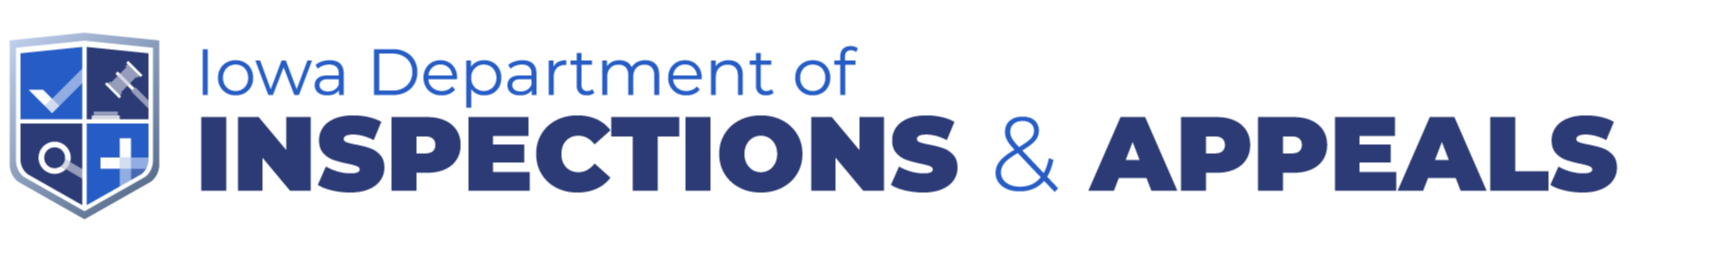 logo for the Iowa Department of Inspections and Appeals